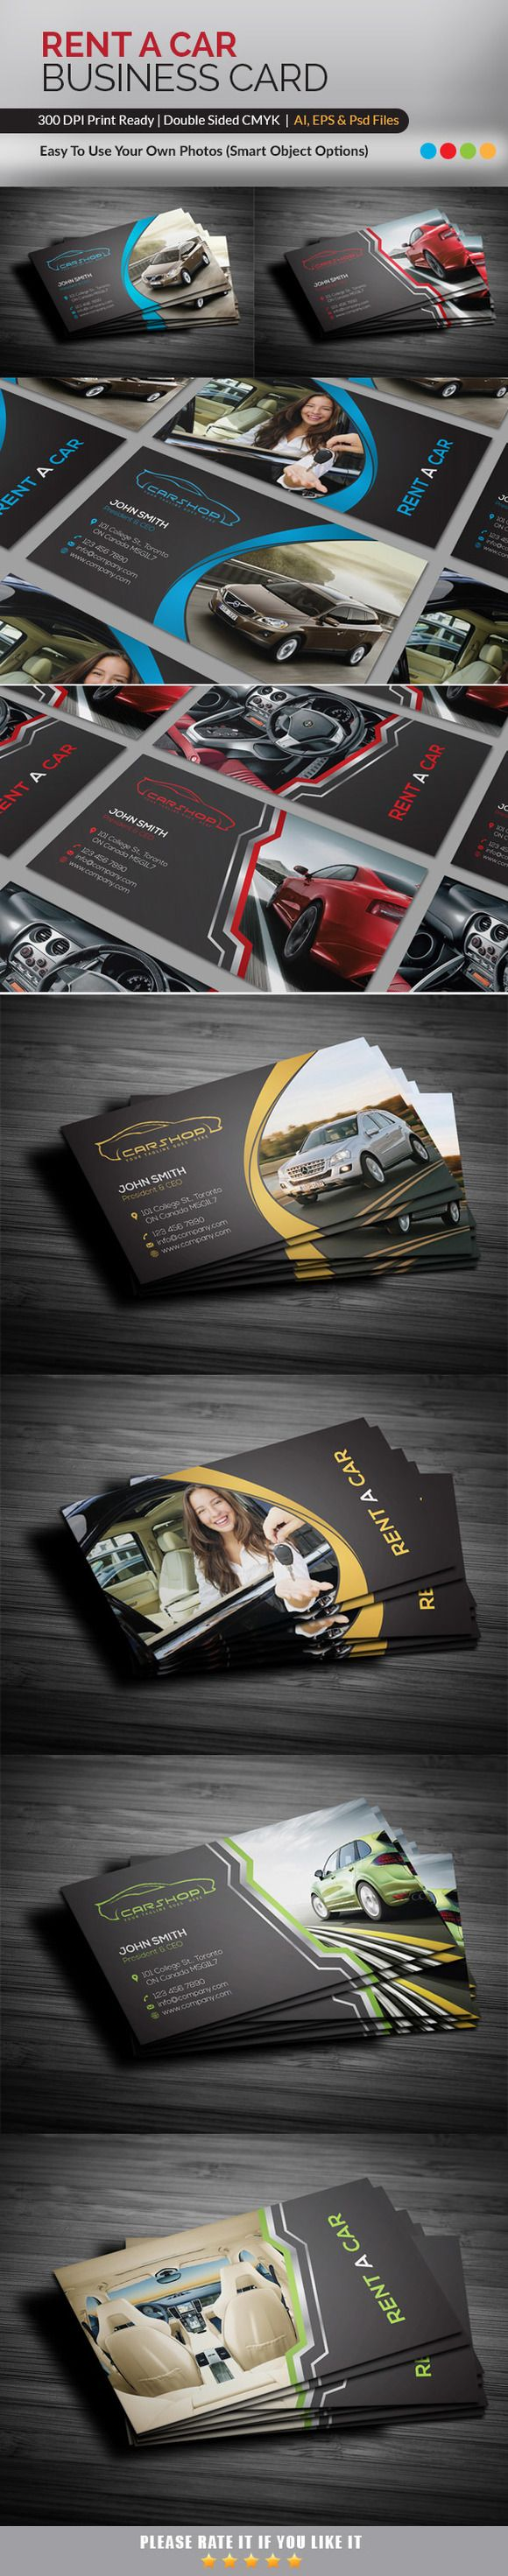 Rent A Car Business Card by RQ Designs on @creativework247